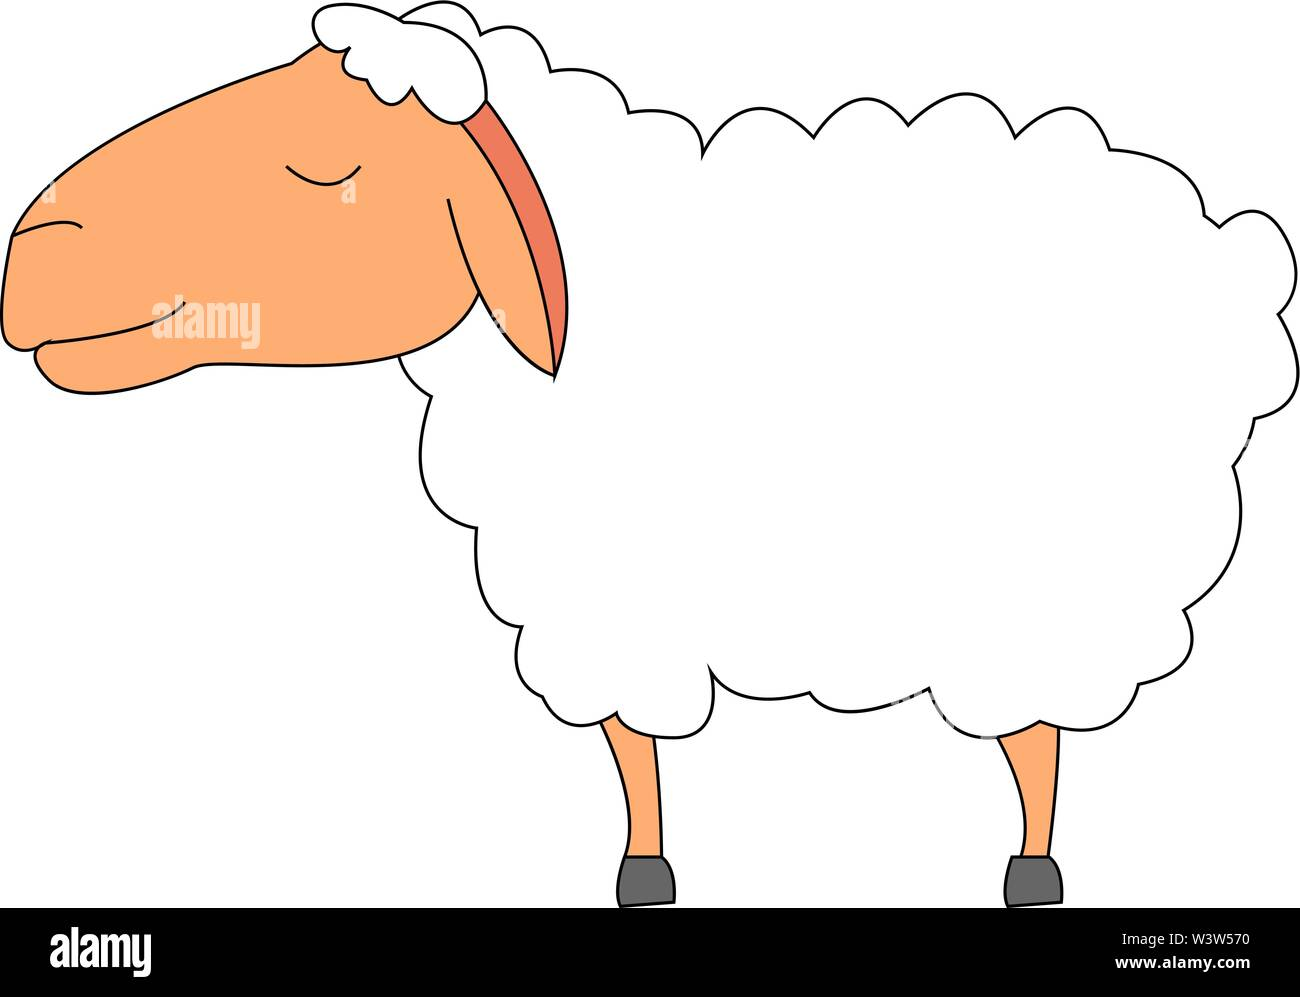 Calm lamb, illustration, vector on white background. - Stock Image